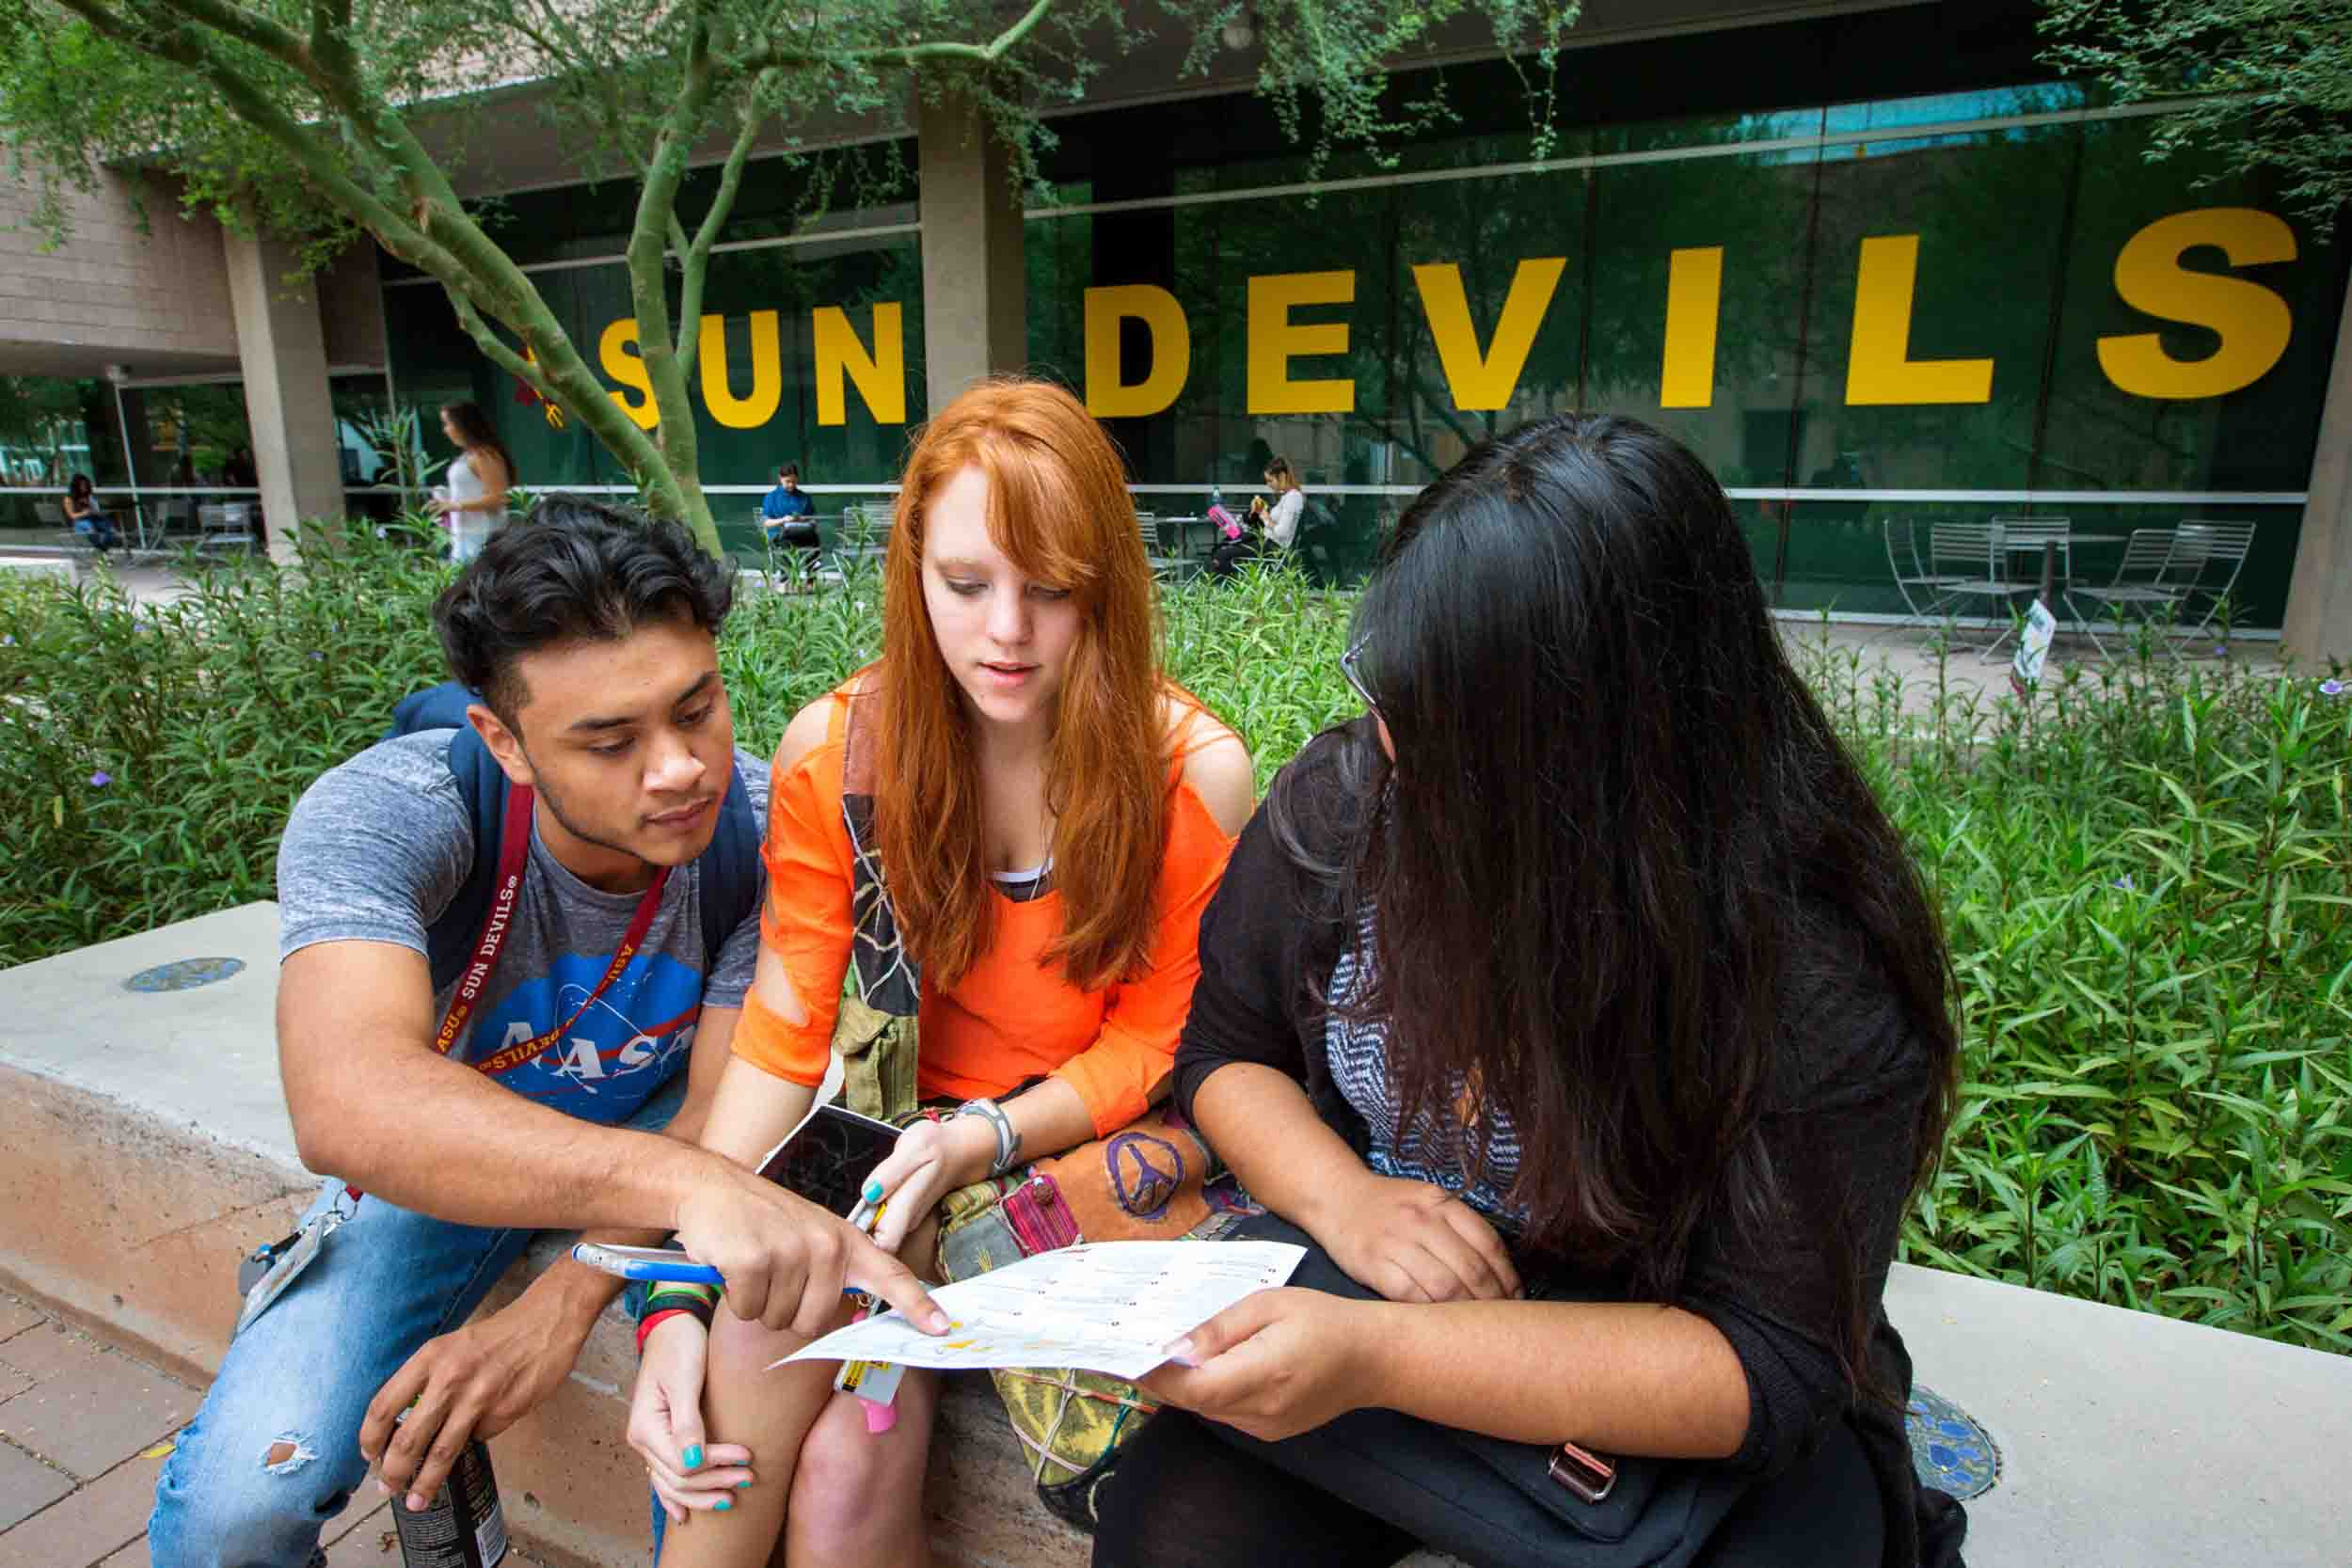 Three prospective ASU students chat together outside of an ASU building, looking over some informational materials